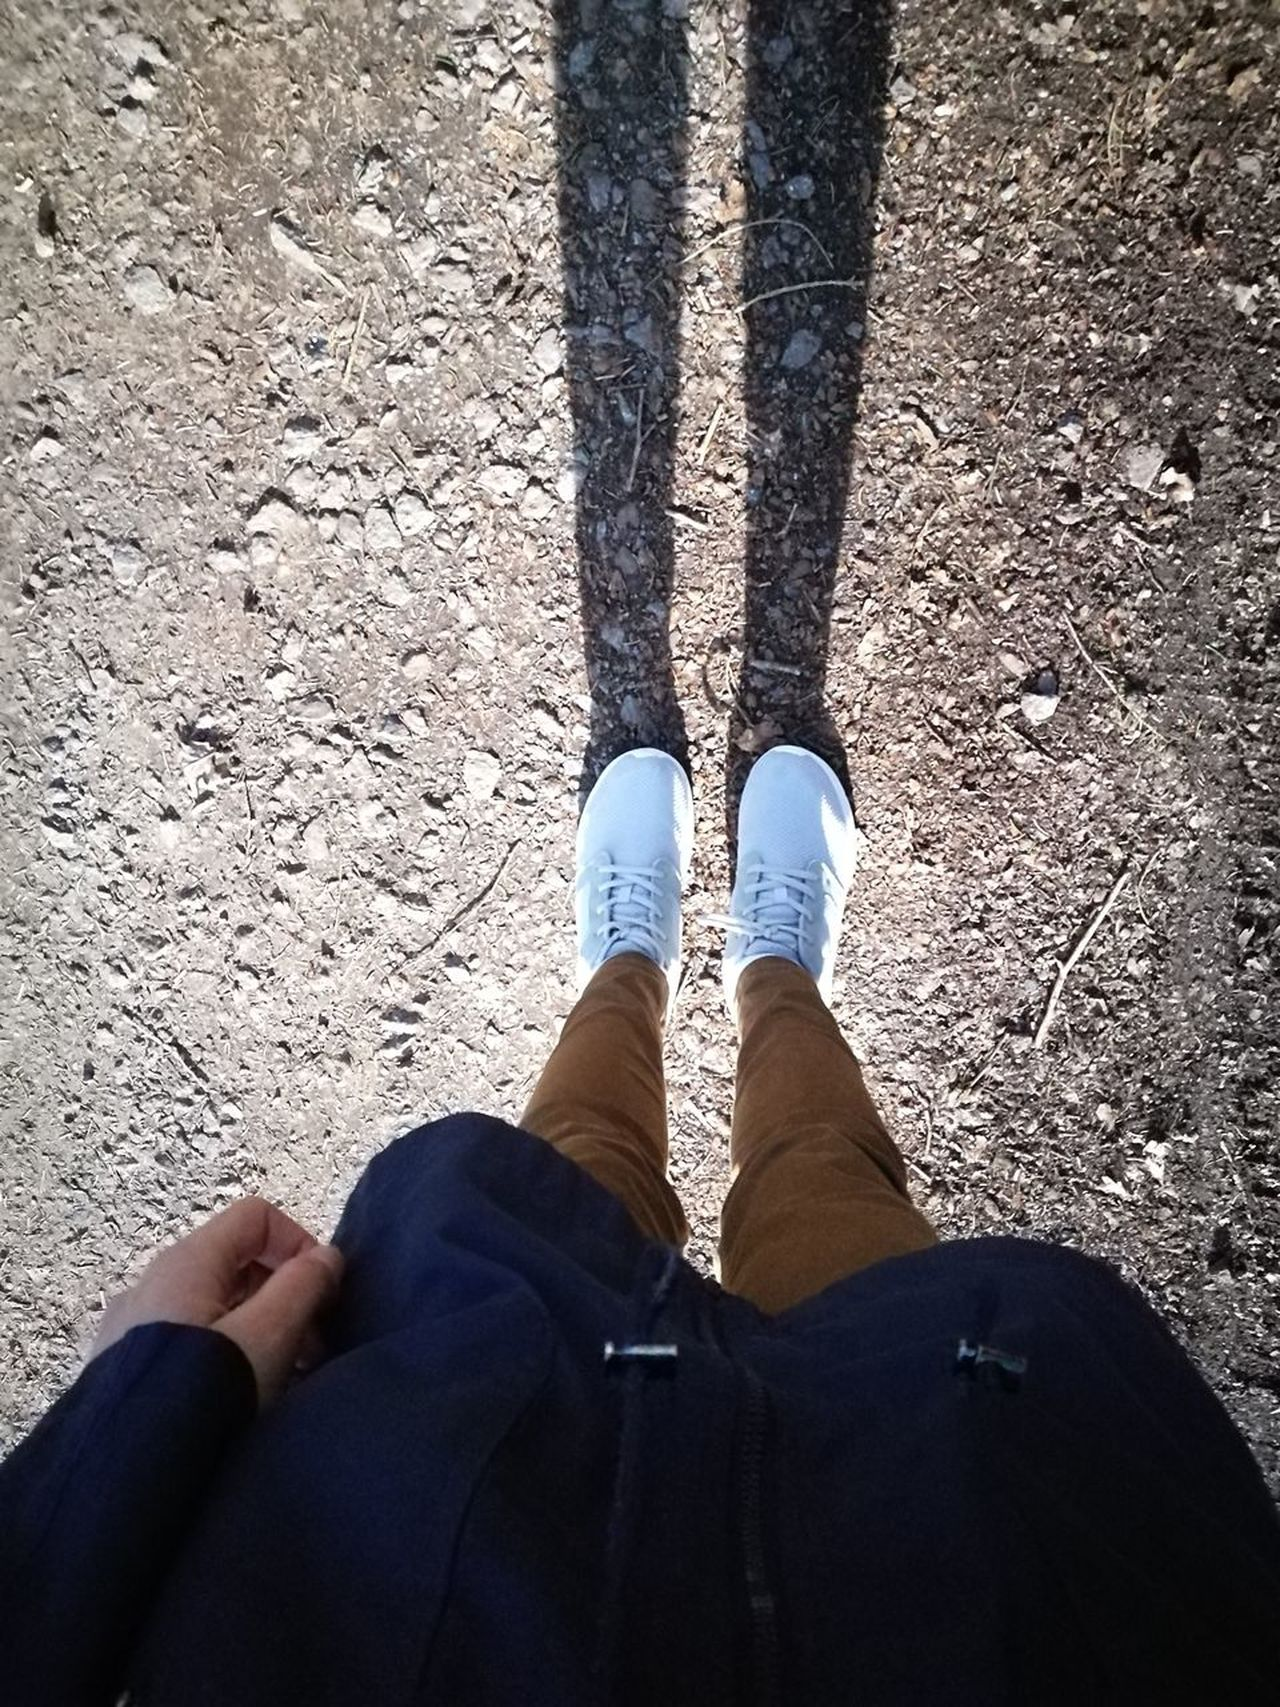 Low Section Human Leg Human Body Part Personal Perspective Standing Shoe One Person Limb Jeans Real People Day Outdoors Adults Only Women People One Woman Only Adult Close-up Leg Only Women Huaweiphotography HuaweiP9 Huawei P9 Leica